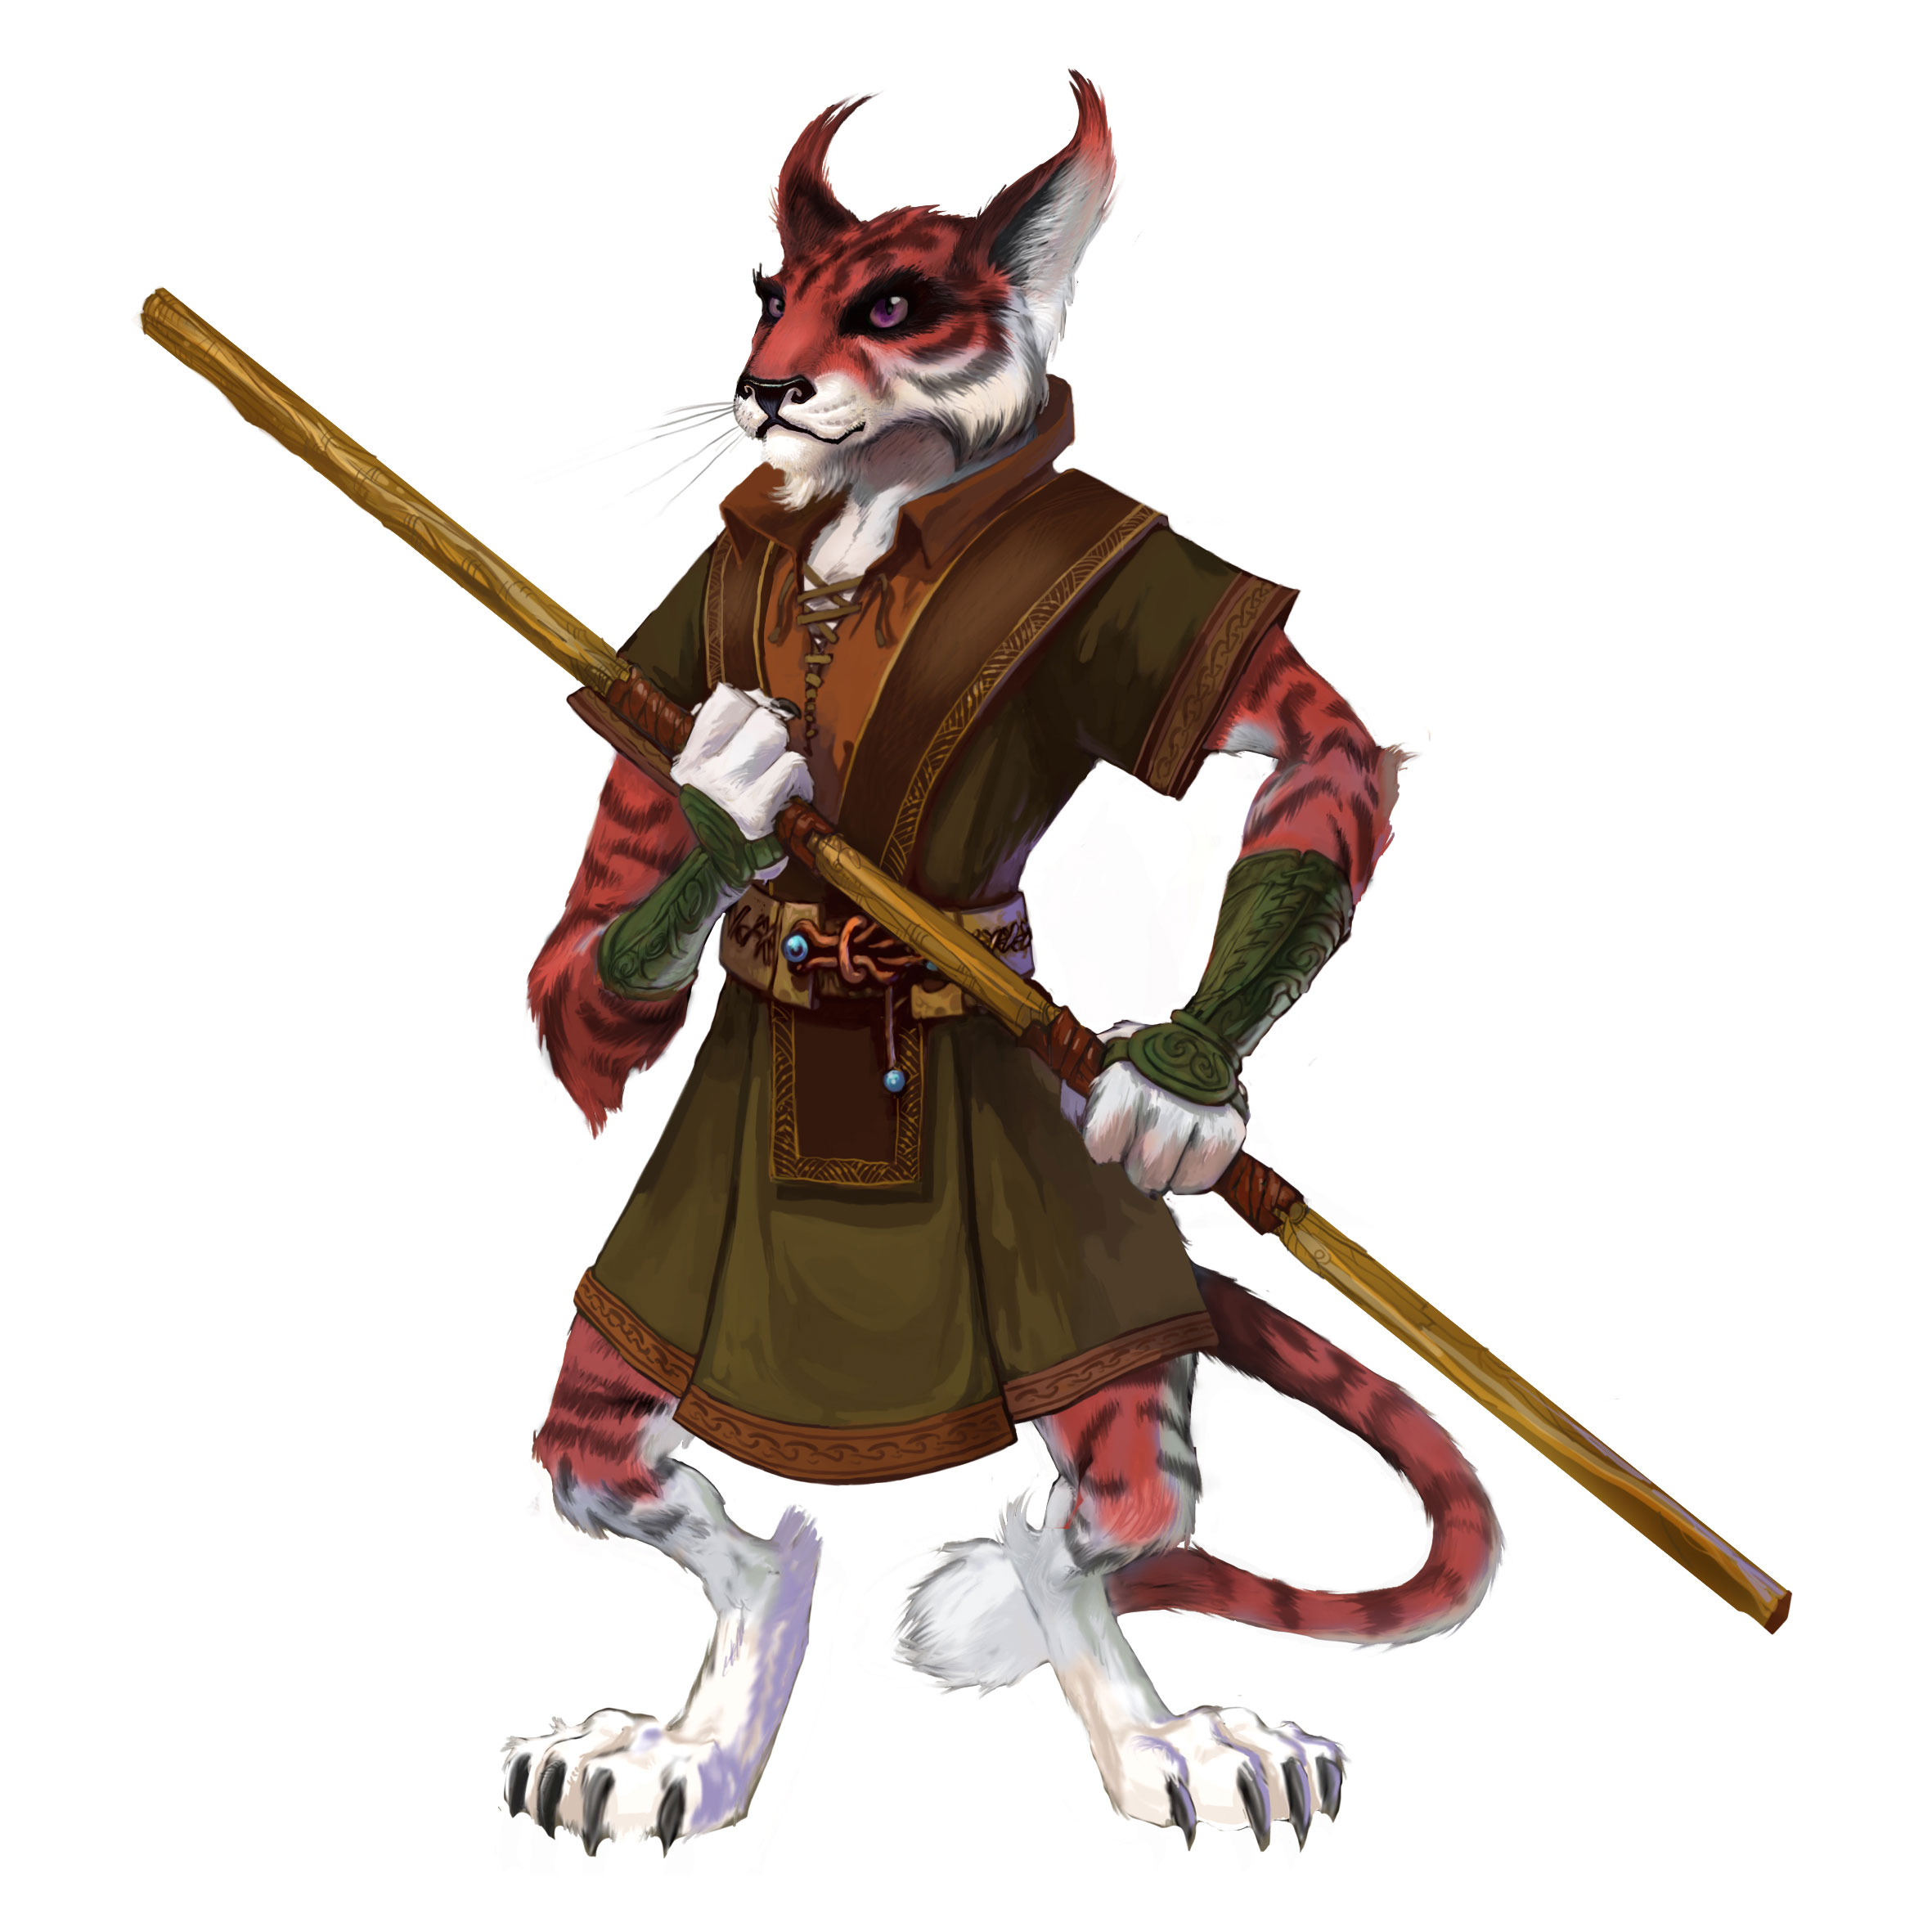 http://www.darkspyro.net/skins/set/images/random_full/dawn_cheetah2.jpg